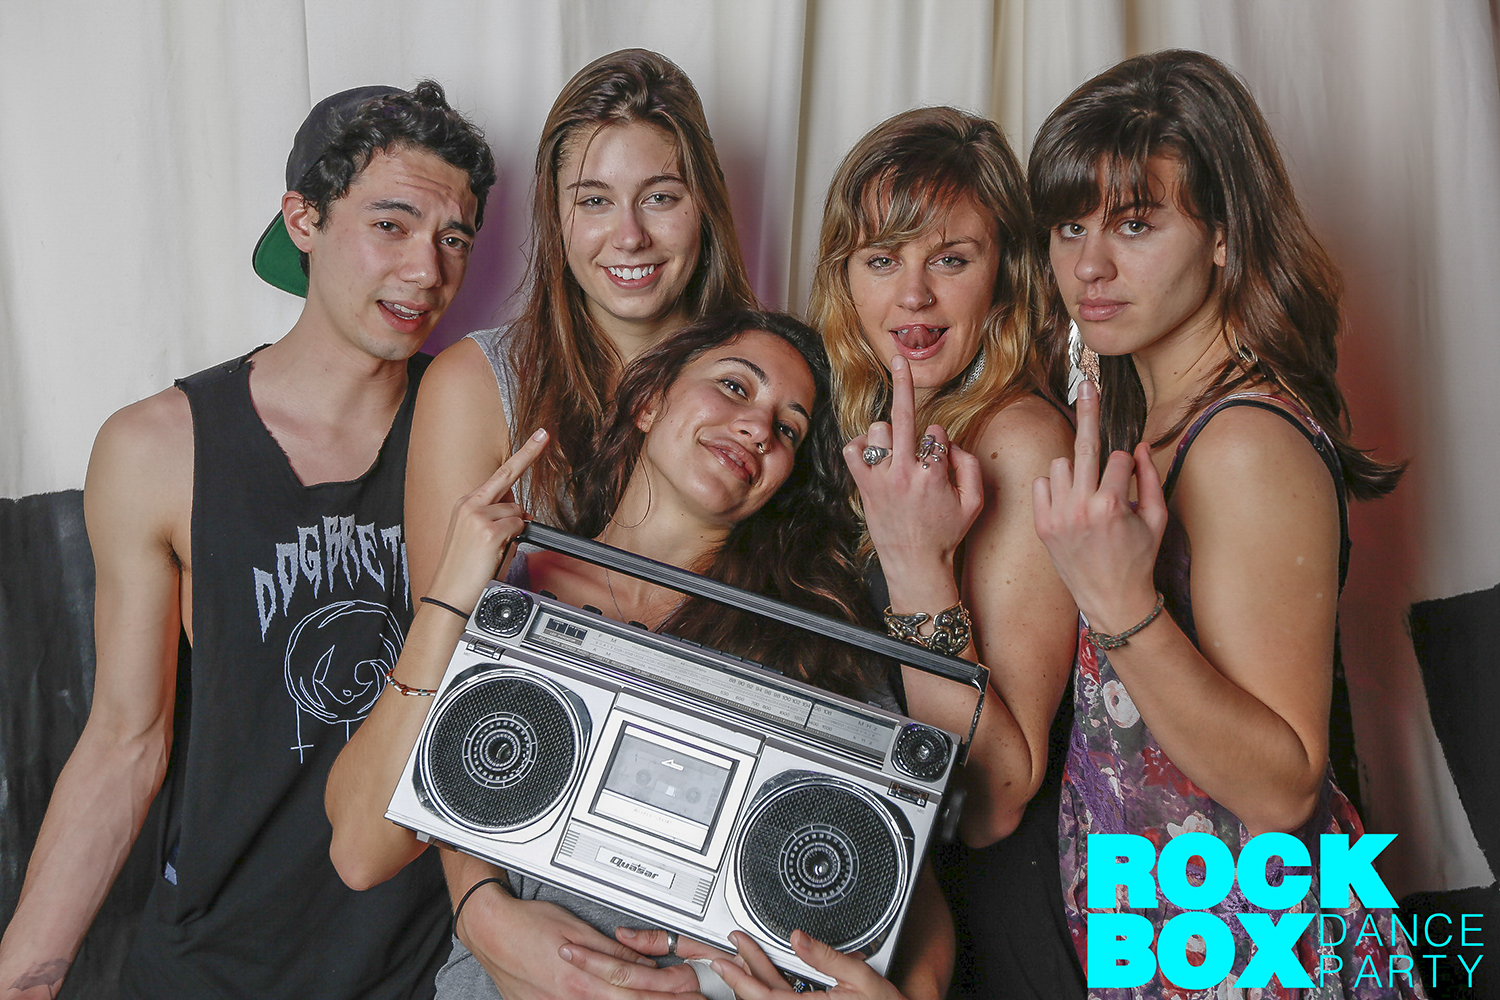 Rock box feb 2015-0183.jpg